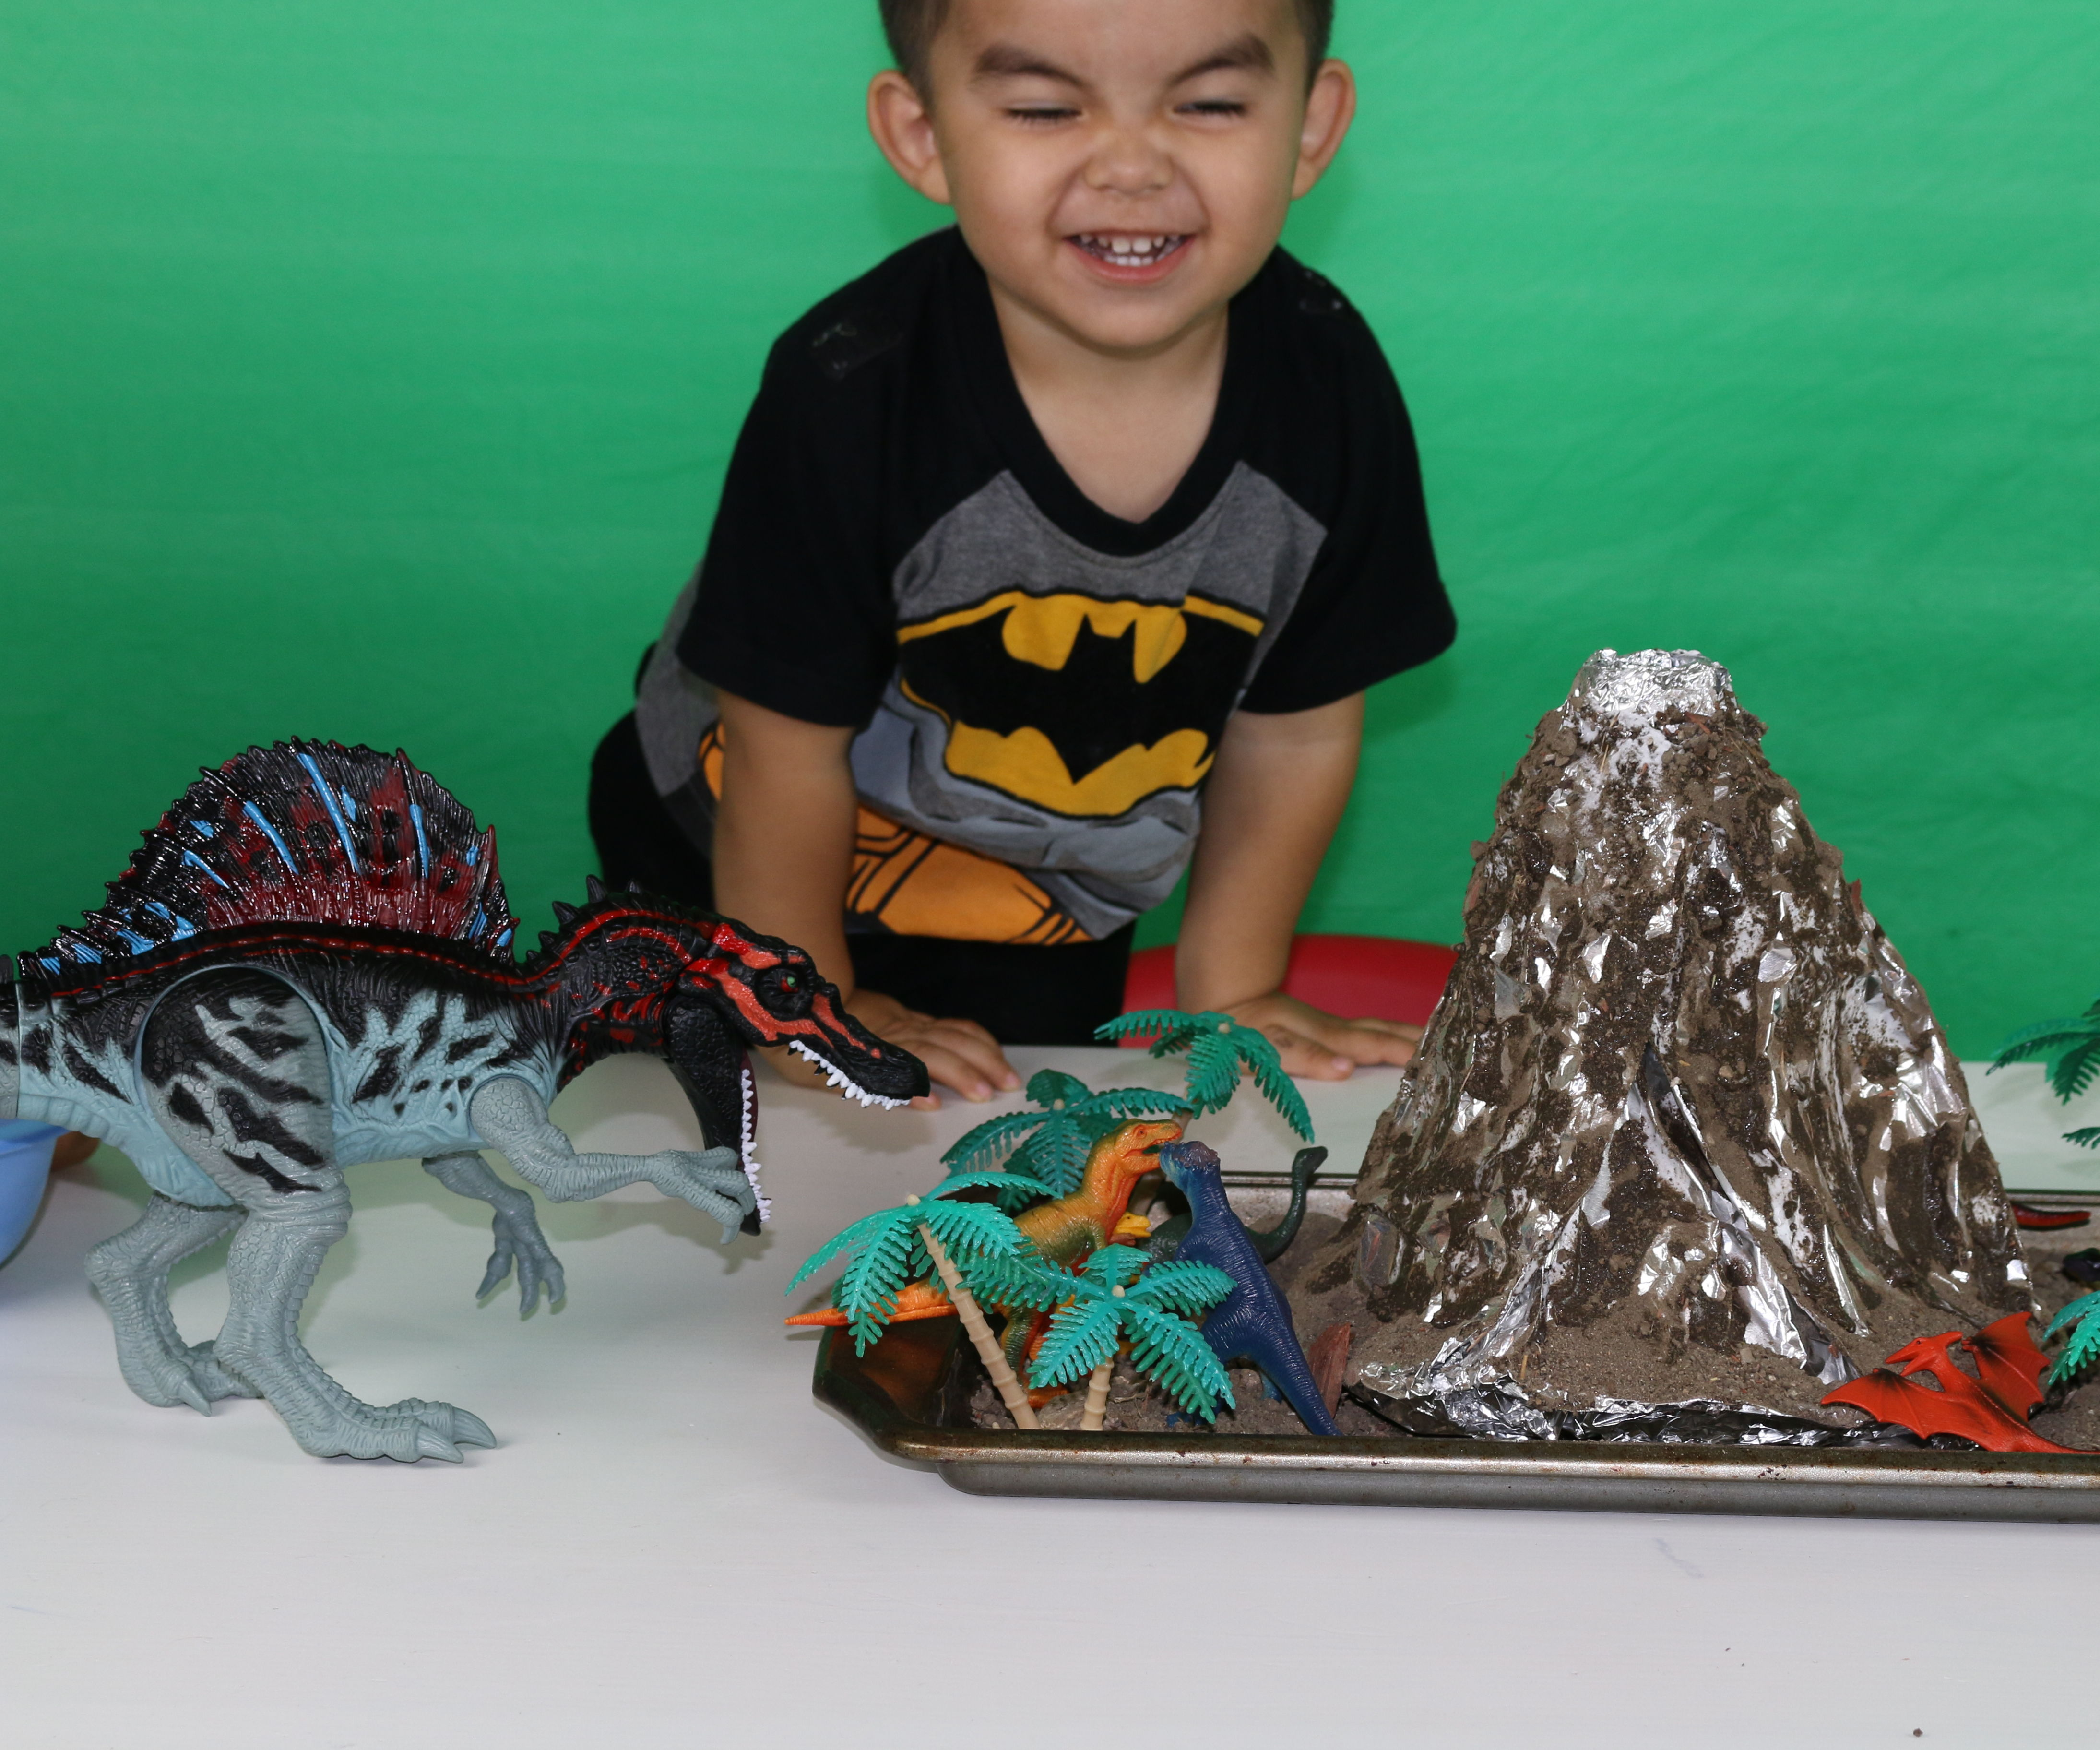 6 Cool Science Experiments for Kids to do at Home including Erupting Volcano